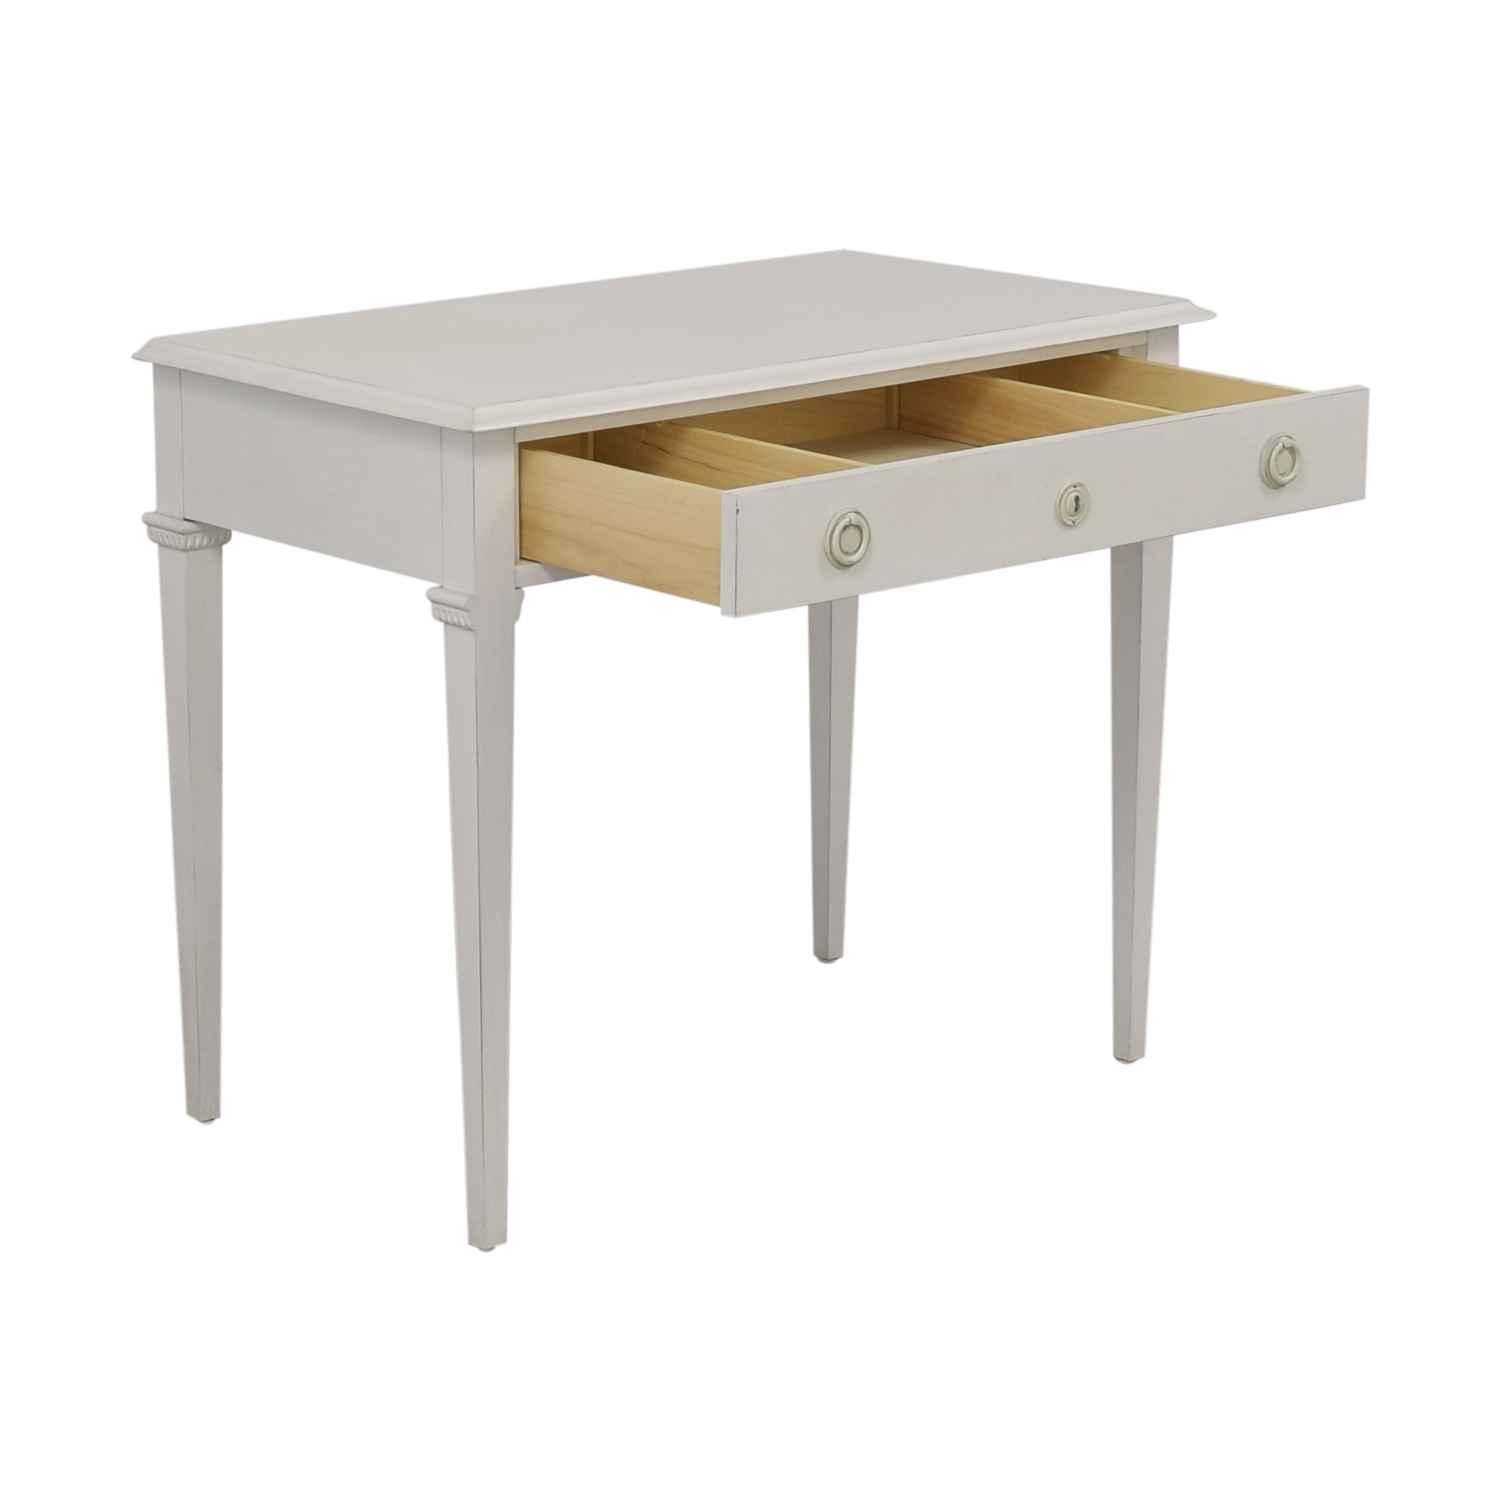 Restoration Hardware Restoration Hardware Writing Table for sale